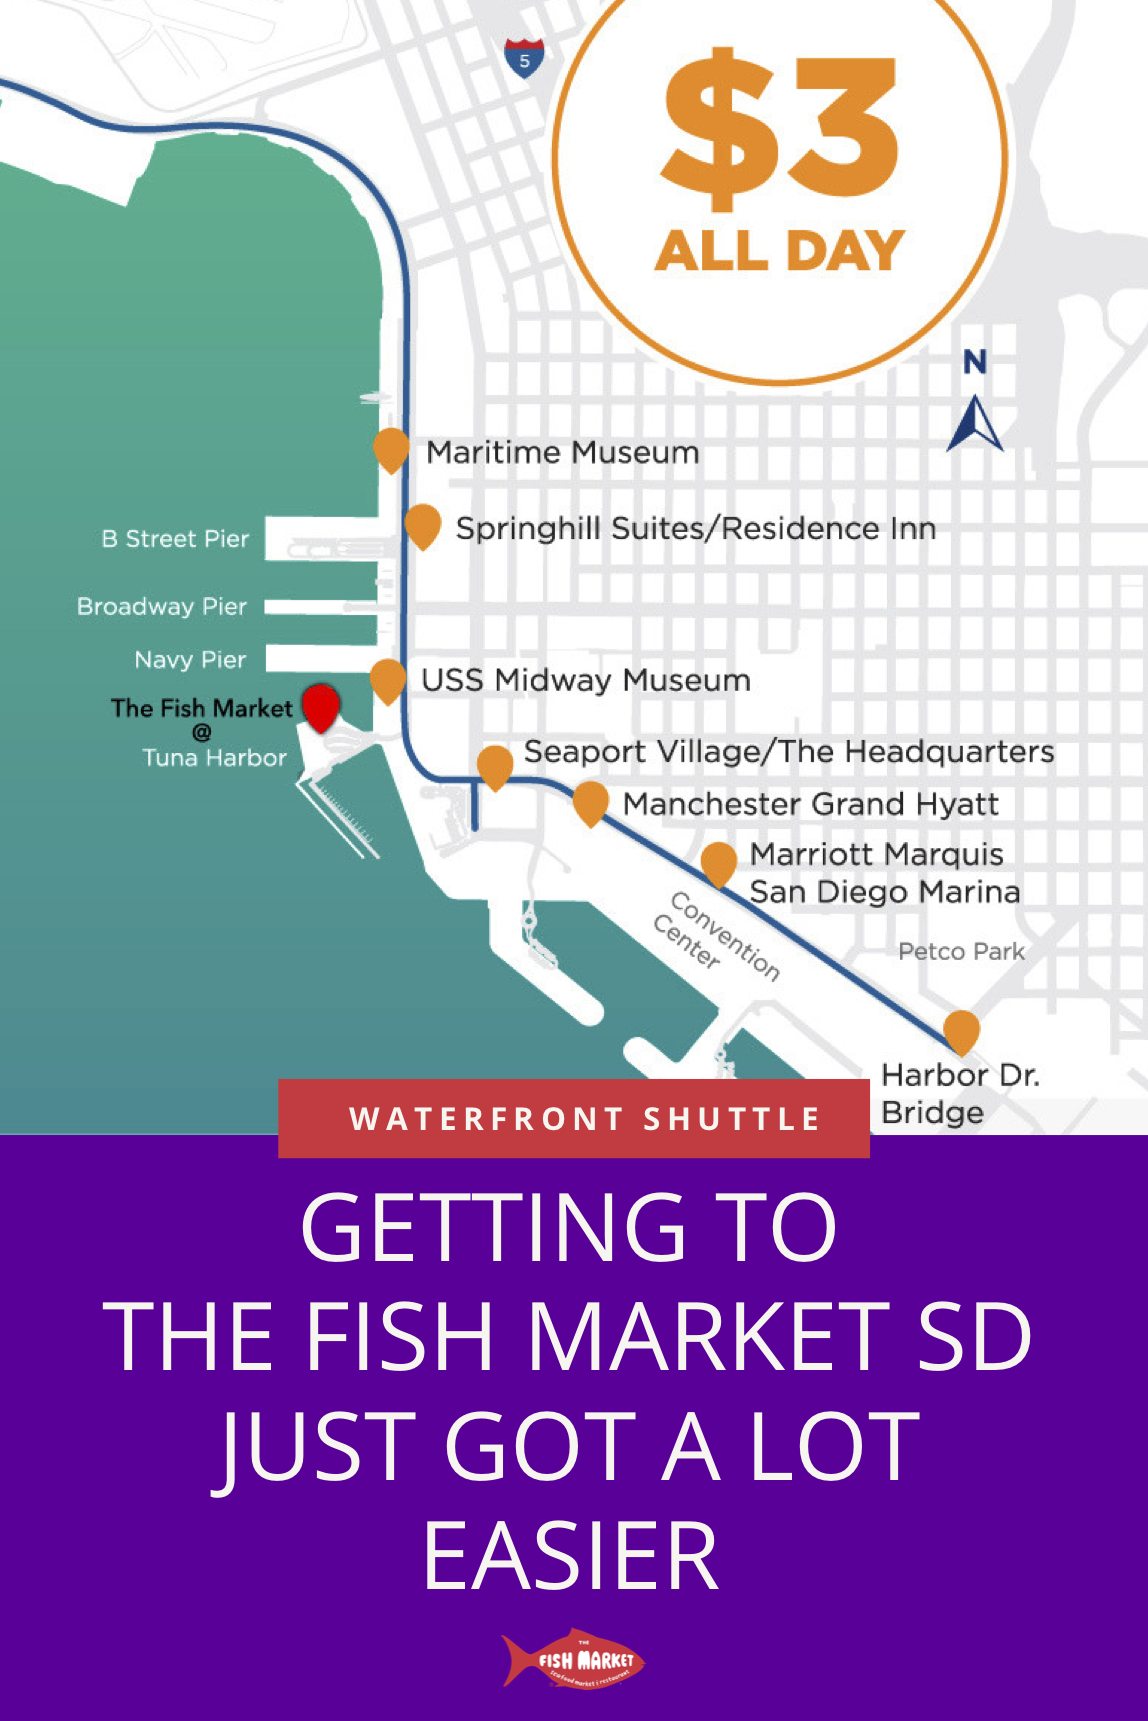 Don T Let Parking Troubles Ruin Your Appetite Take The Waterfront Shuttle To Thefishmarket Sandiego This Summer Seaf San Diego Hotels San Diego Waterfront